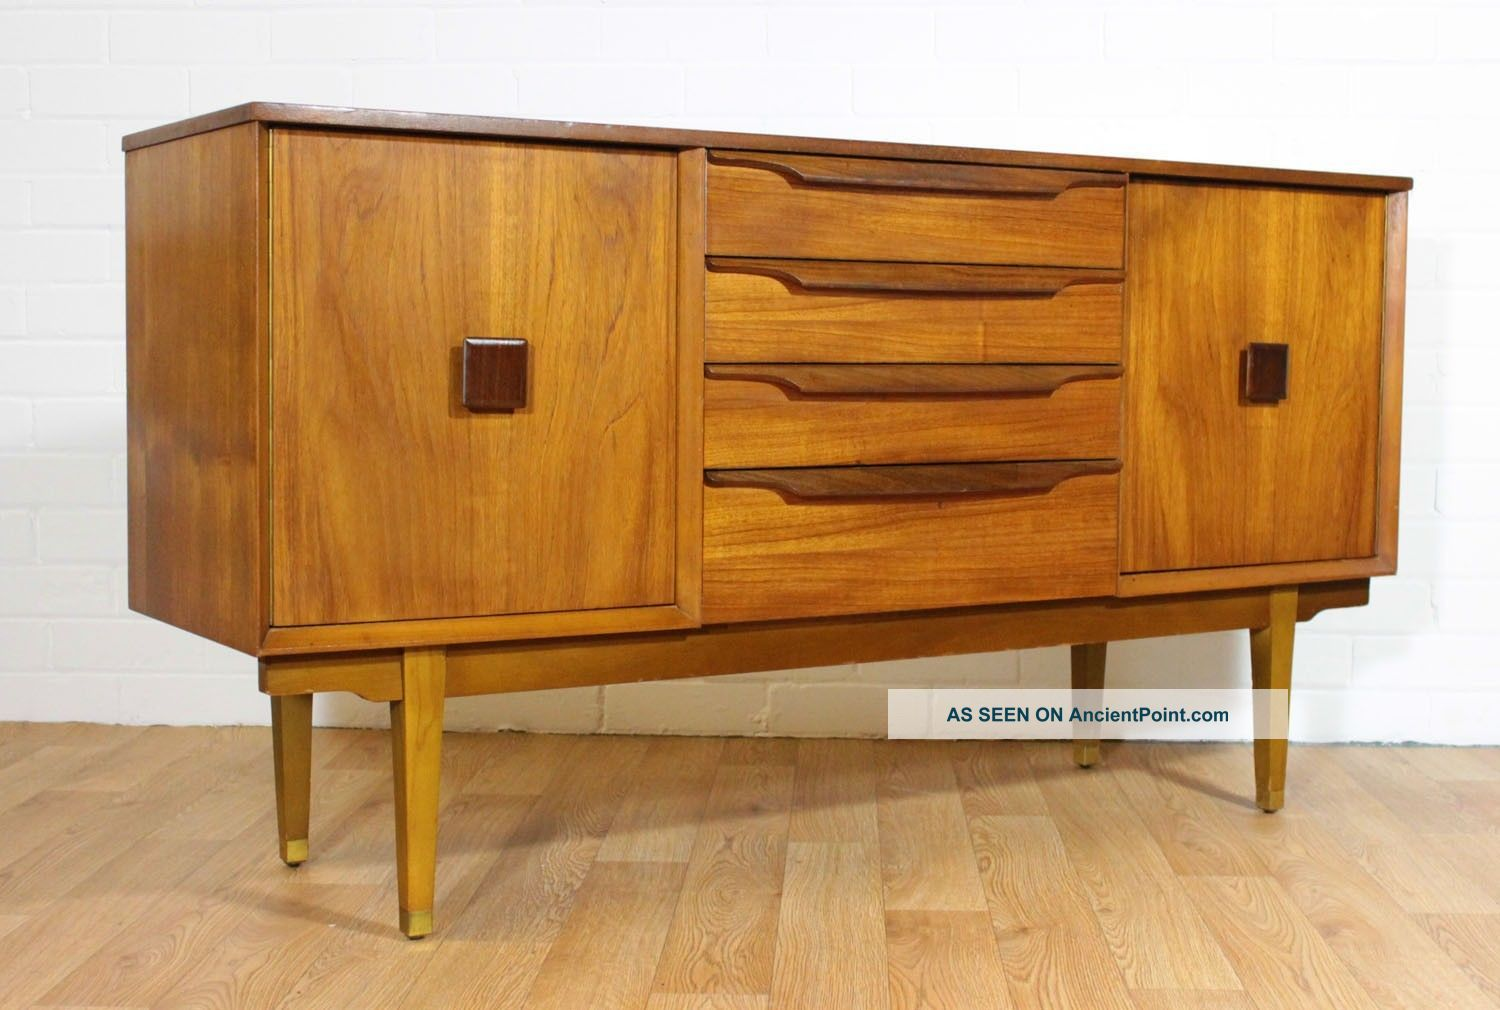 Mid Century Danish Inspired Teak Credenza/ Buffet/ Tv Console In The Kofod Style Post-1950 photo